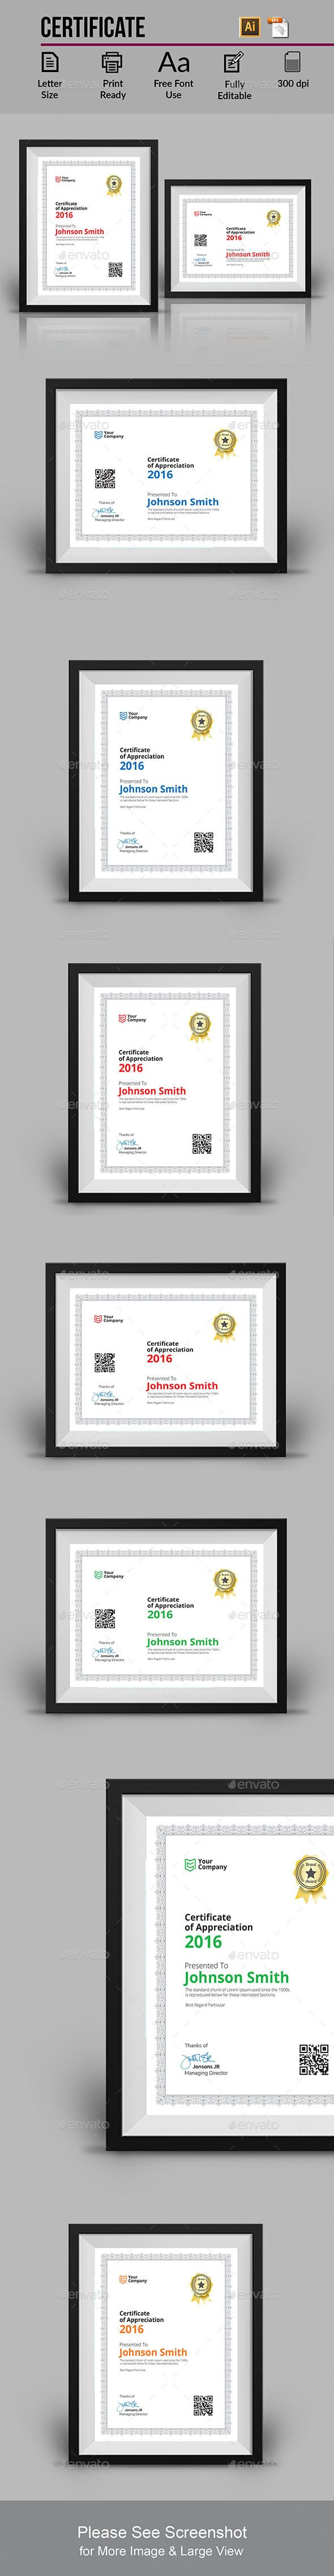 186 best certificate templates designs images on pinterest certificate yadclub Choice Image